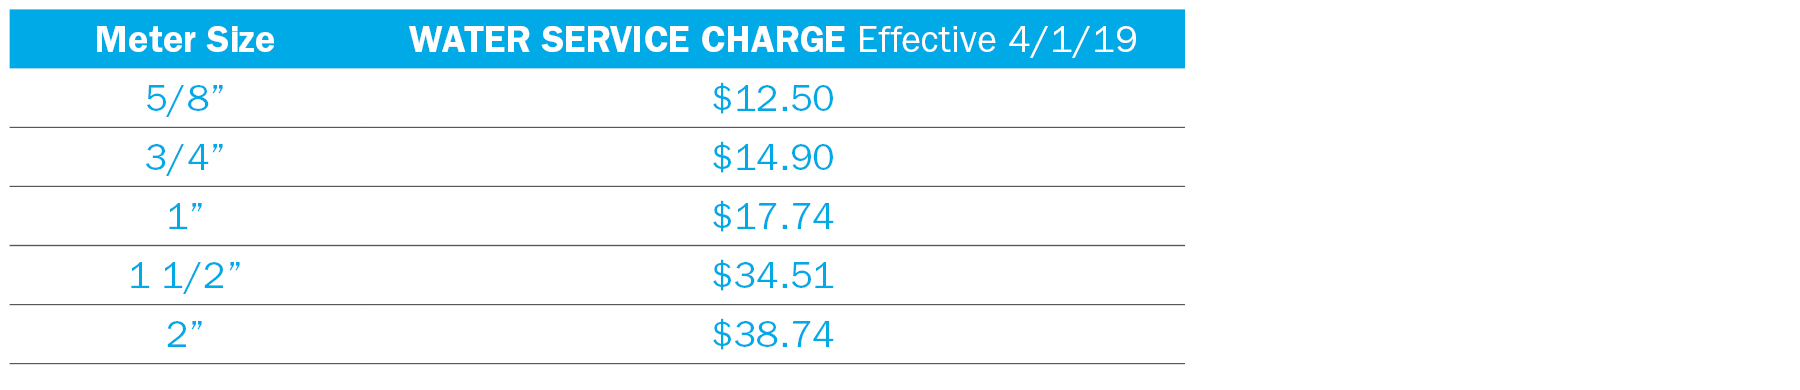 Rate Charts for Web - Service Charge3